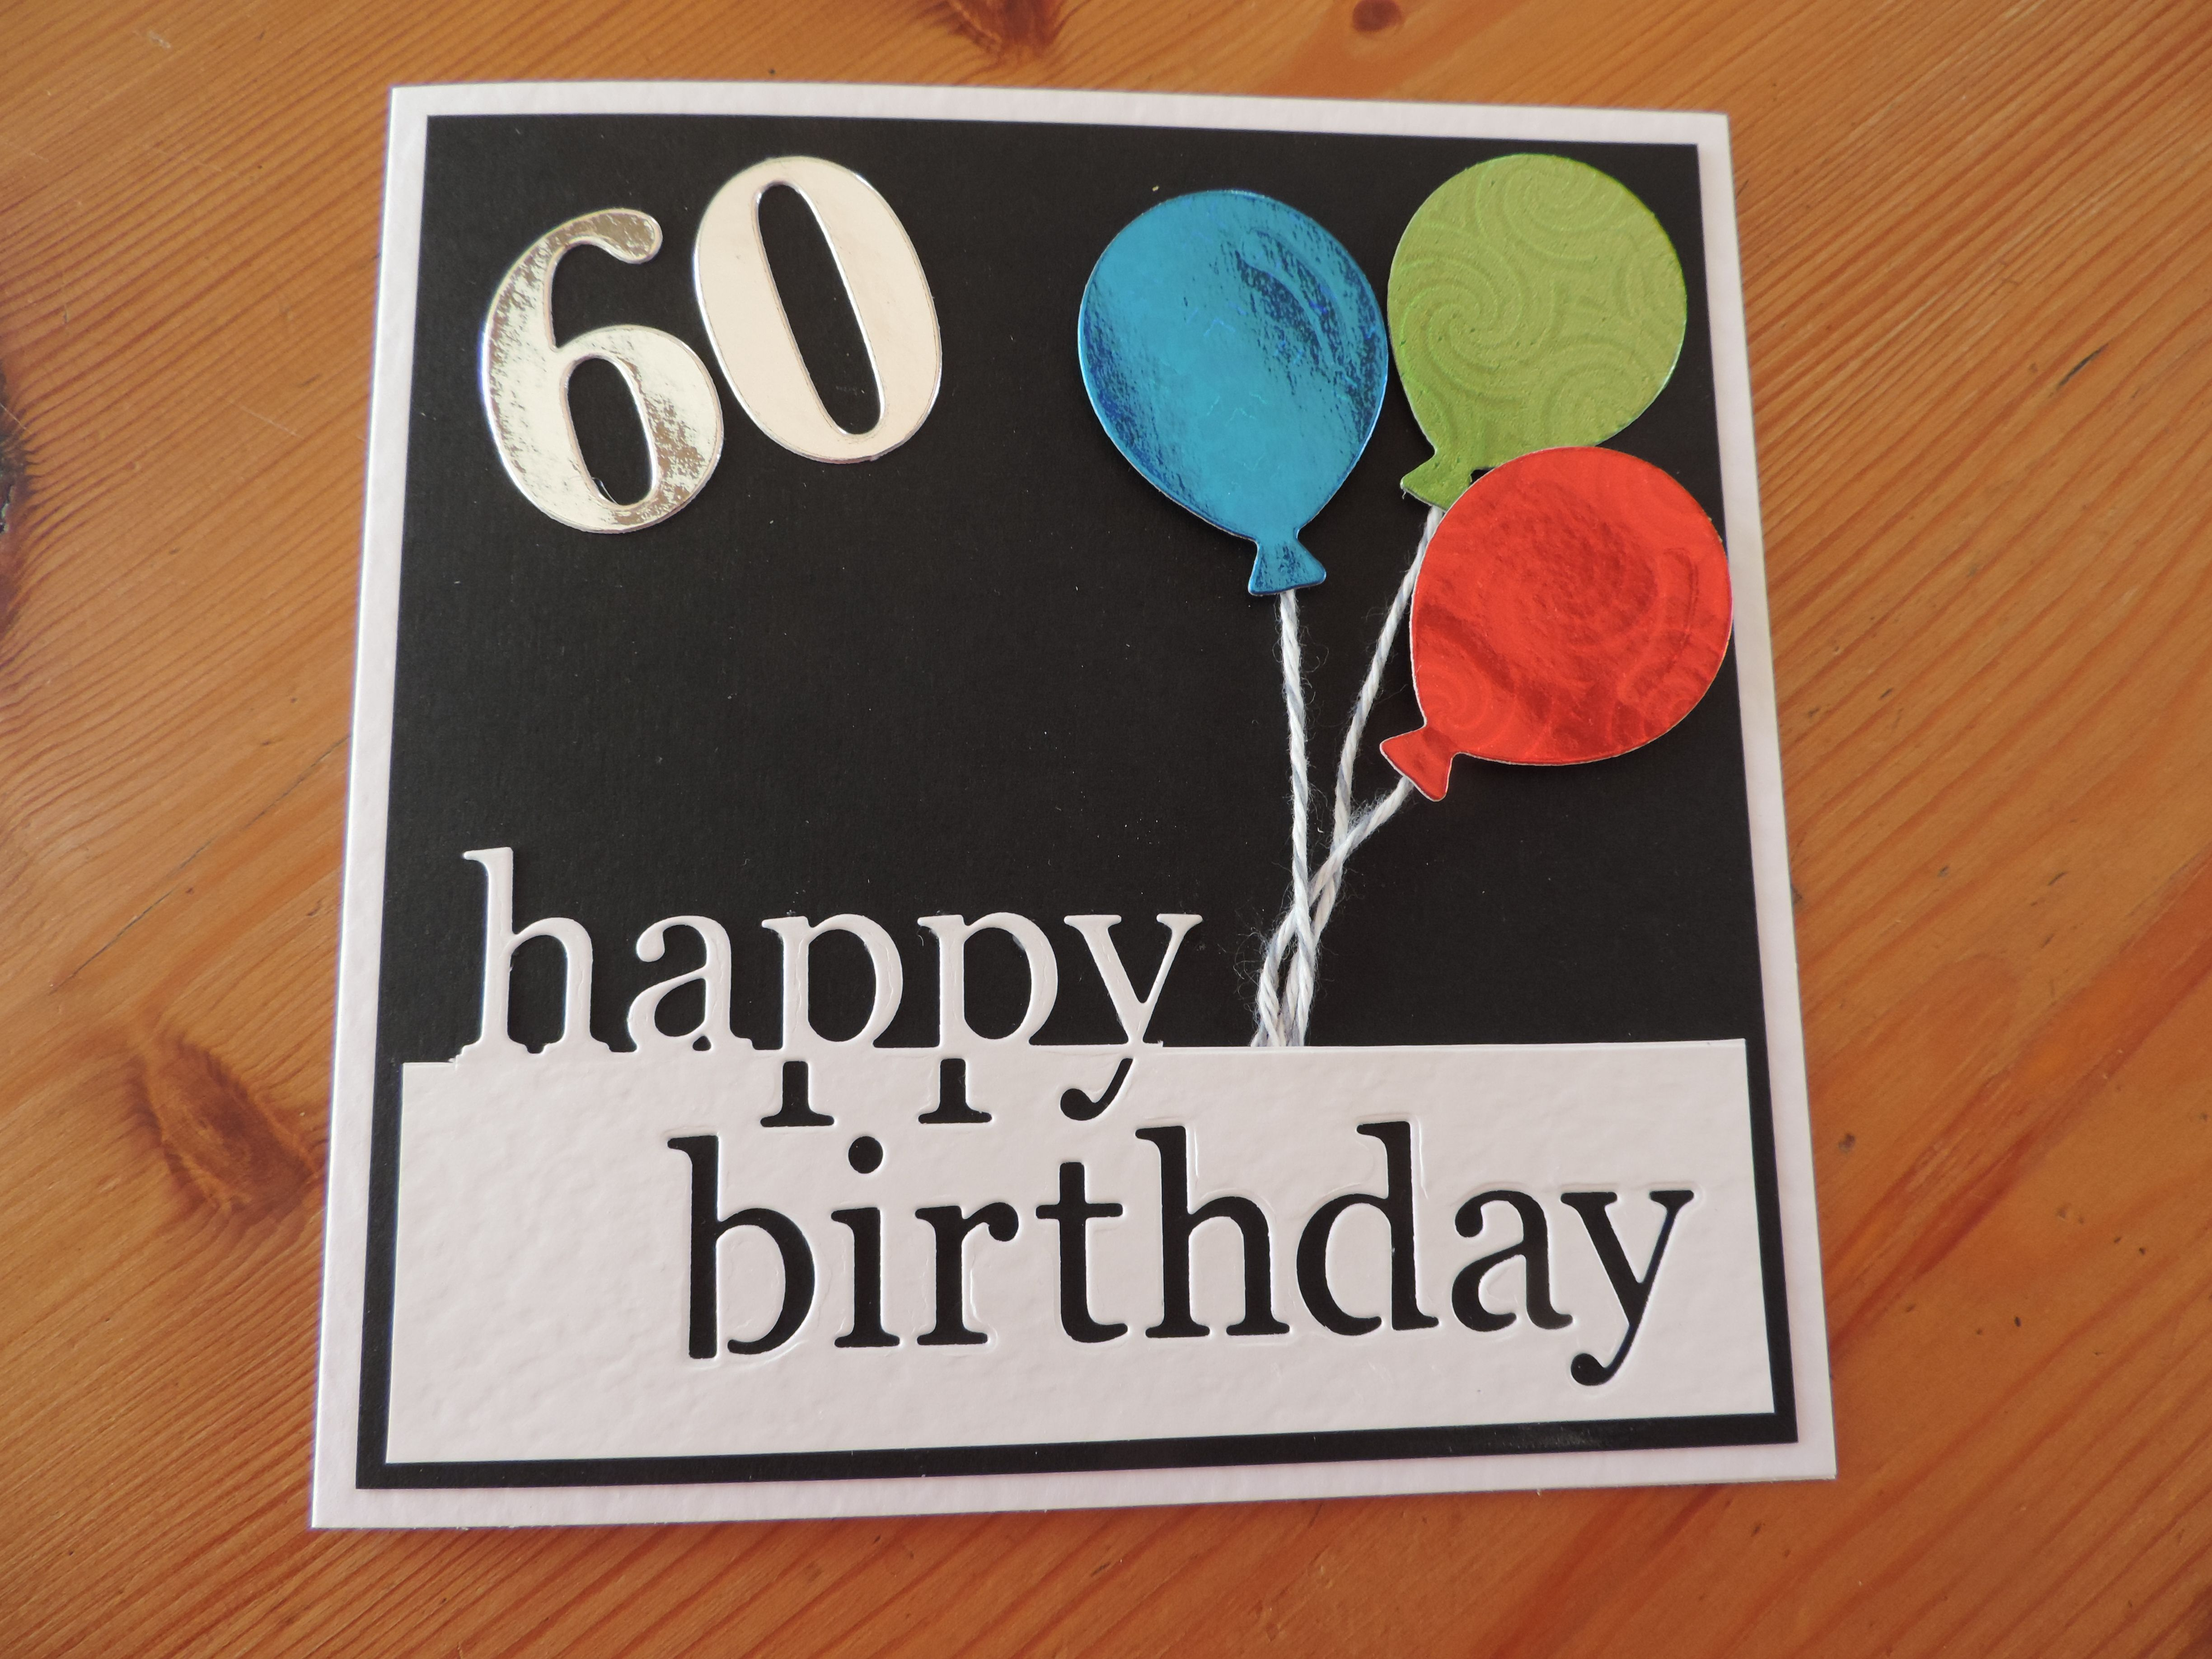 happy birthday dies for card making ; 64514a1f225401bb2c986aecaba2d5d5